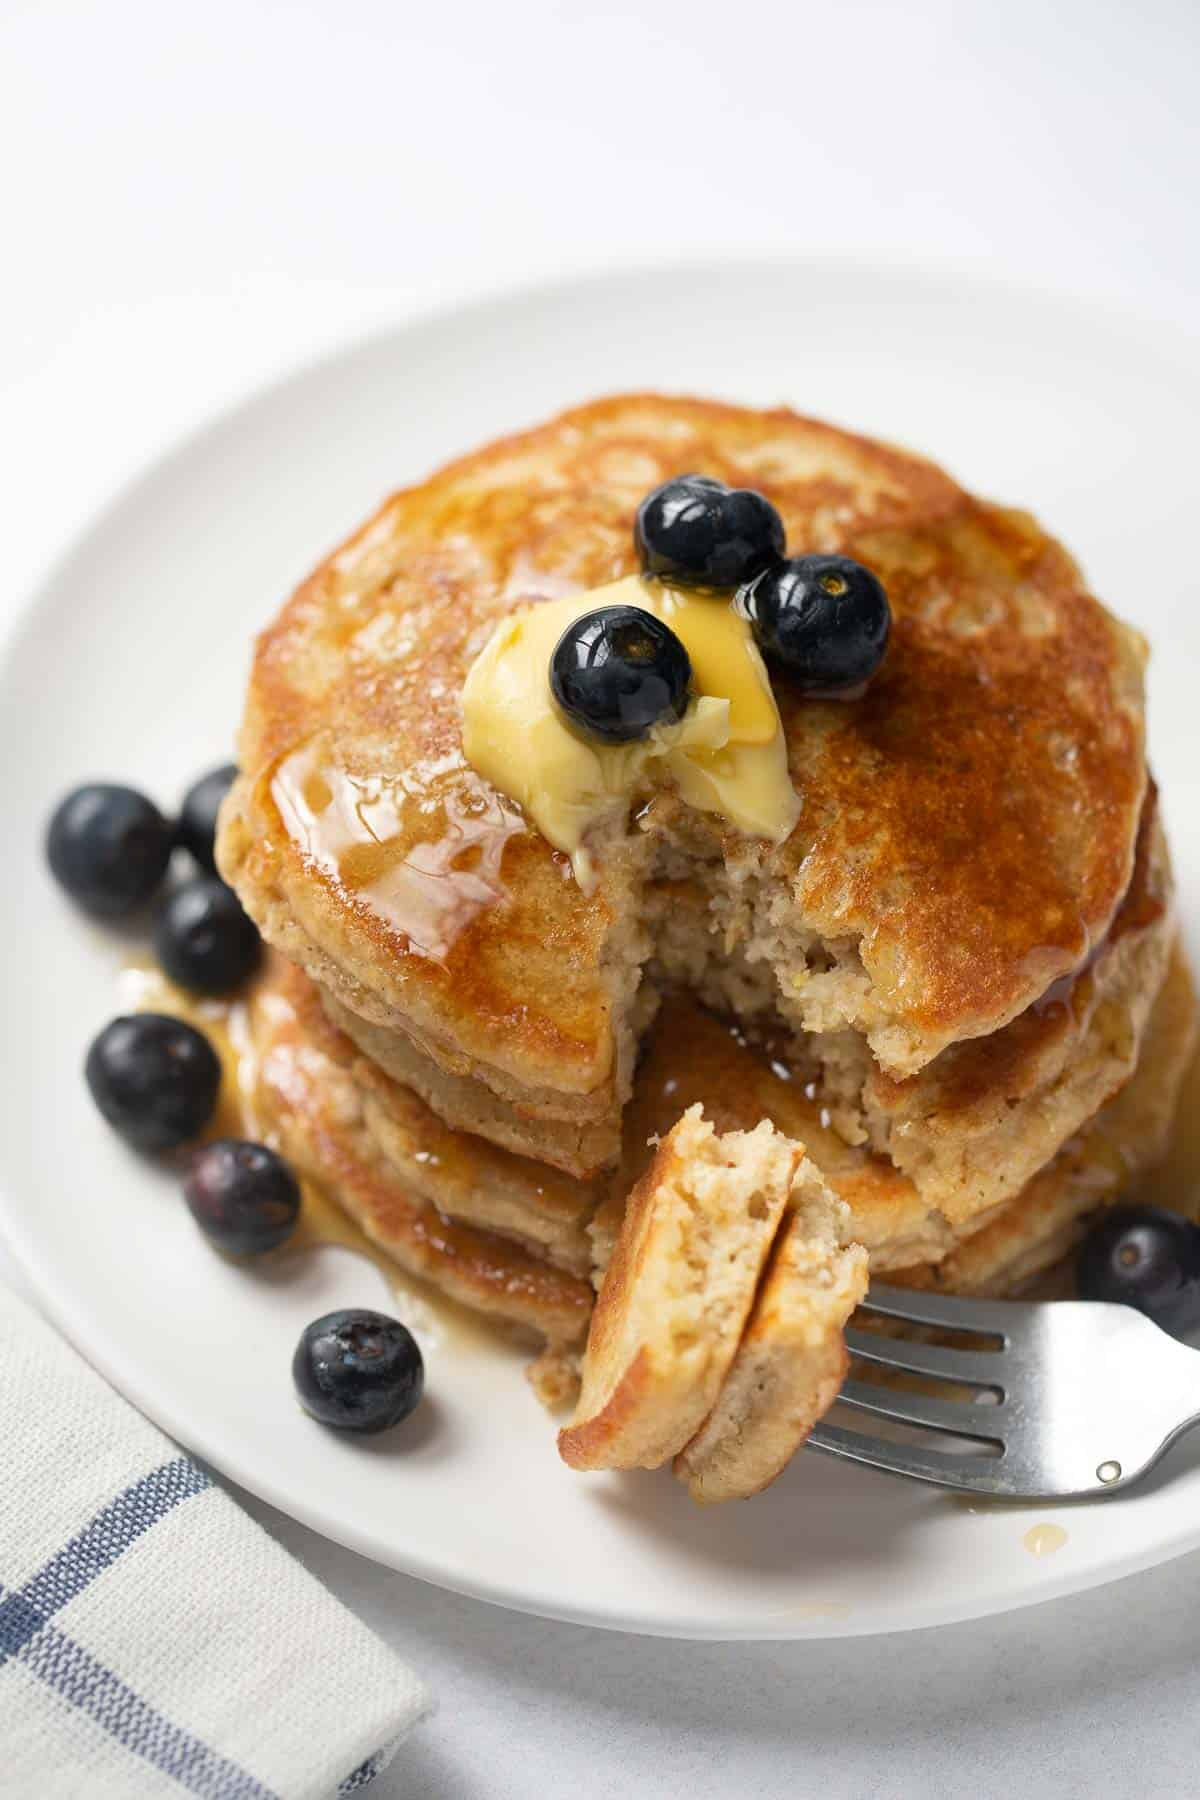 stalk of gluten-free pancakes on white plate with blueberries, syrup and fork with bite